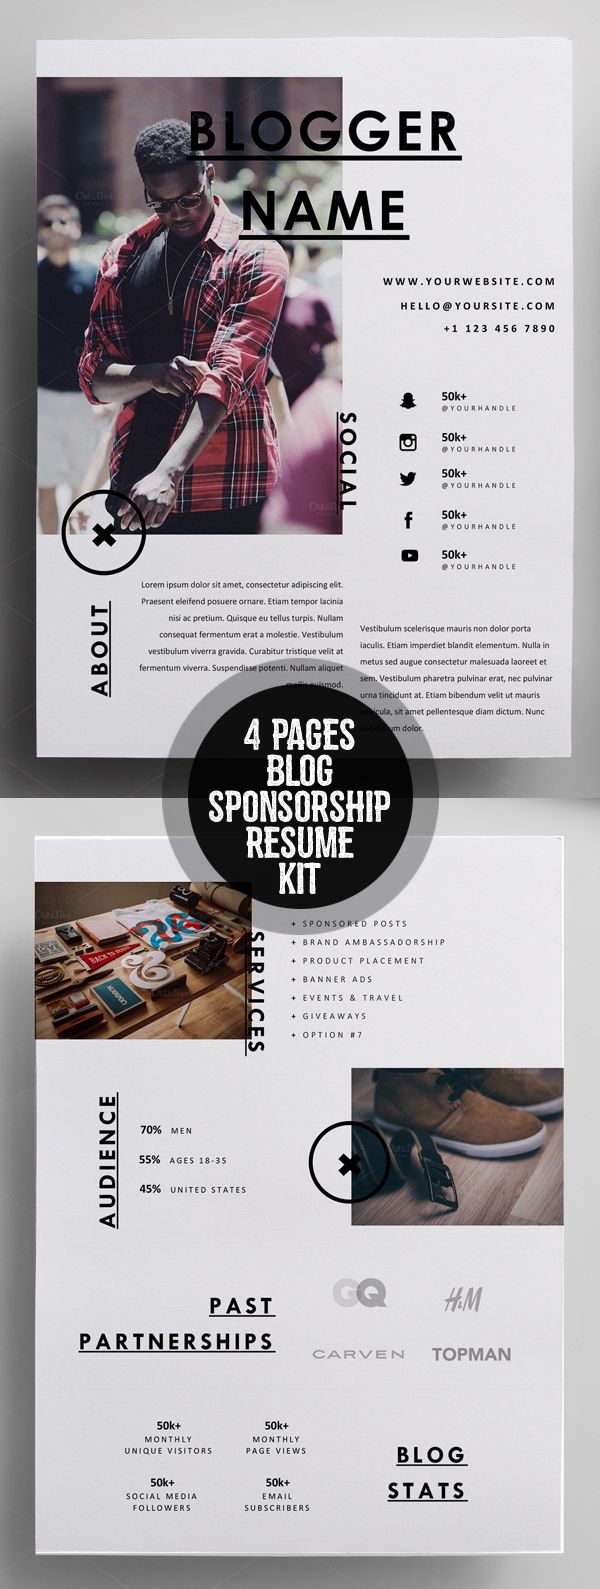 best ideas about best resume template perfect creative 4 pages blog sponsorship kit resume template